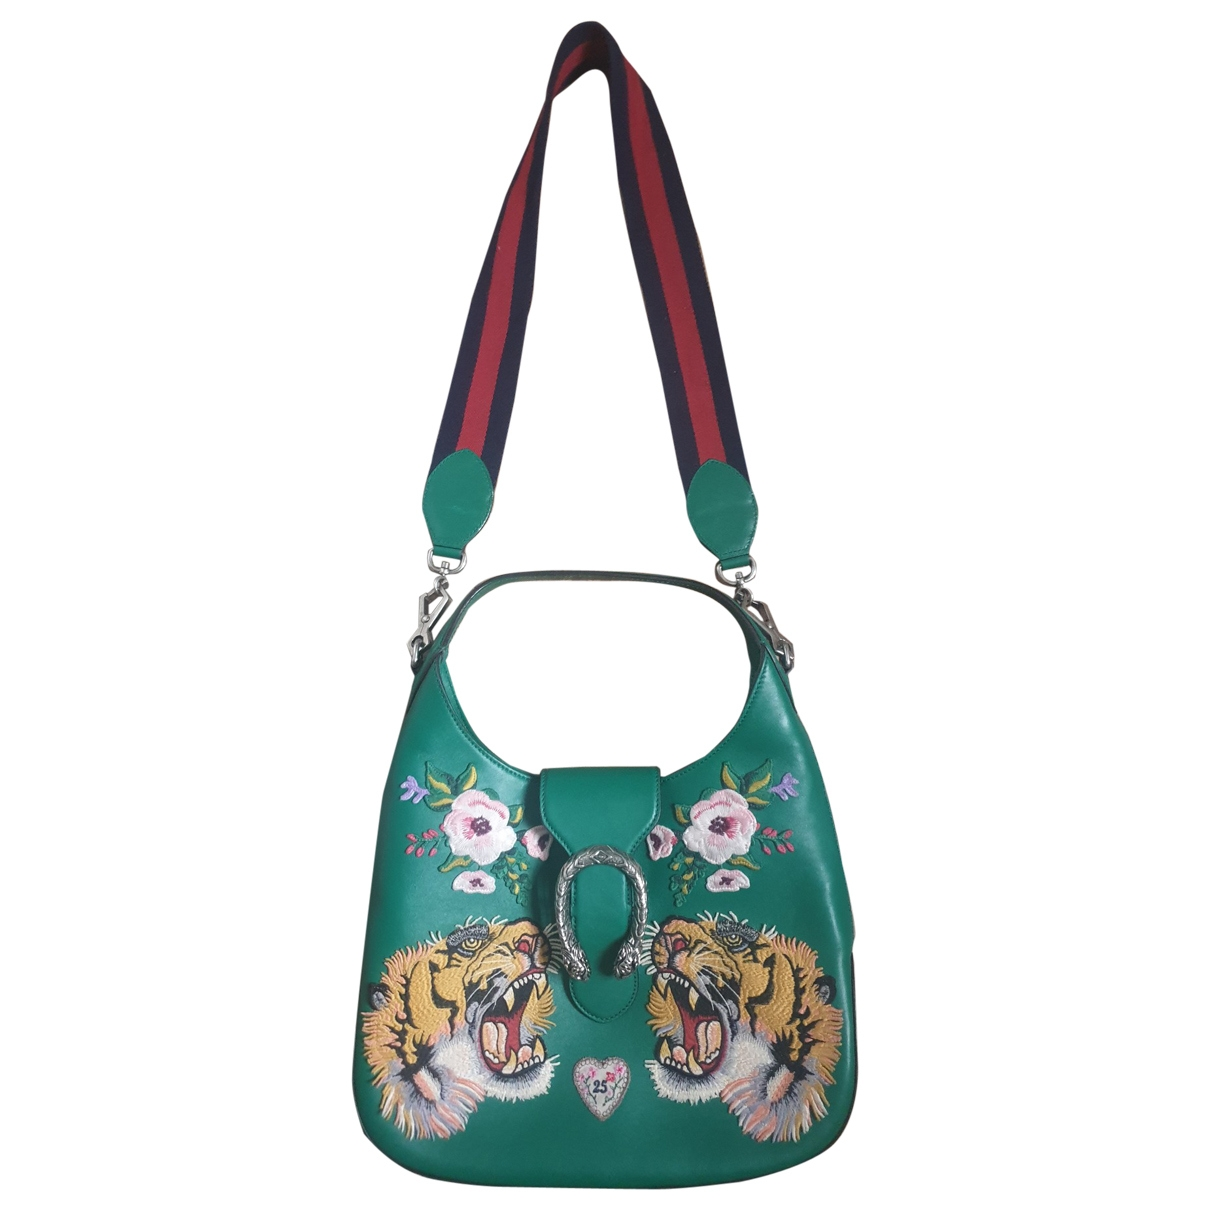 Gucci Dionysus Green Leather handbag for Women \N